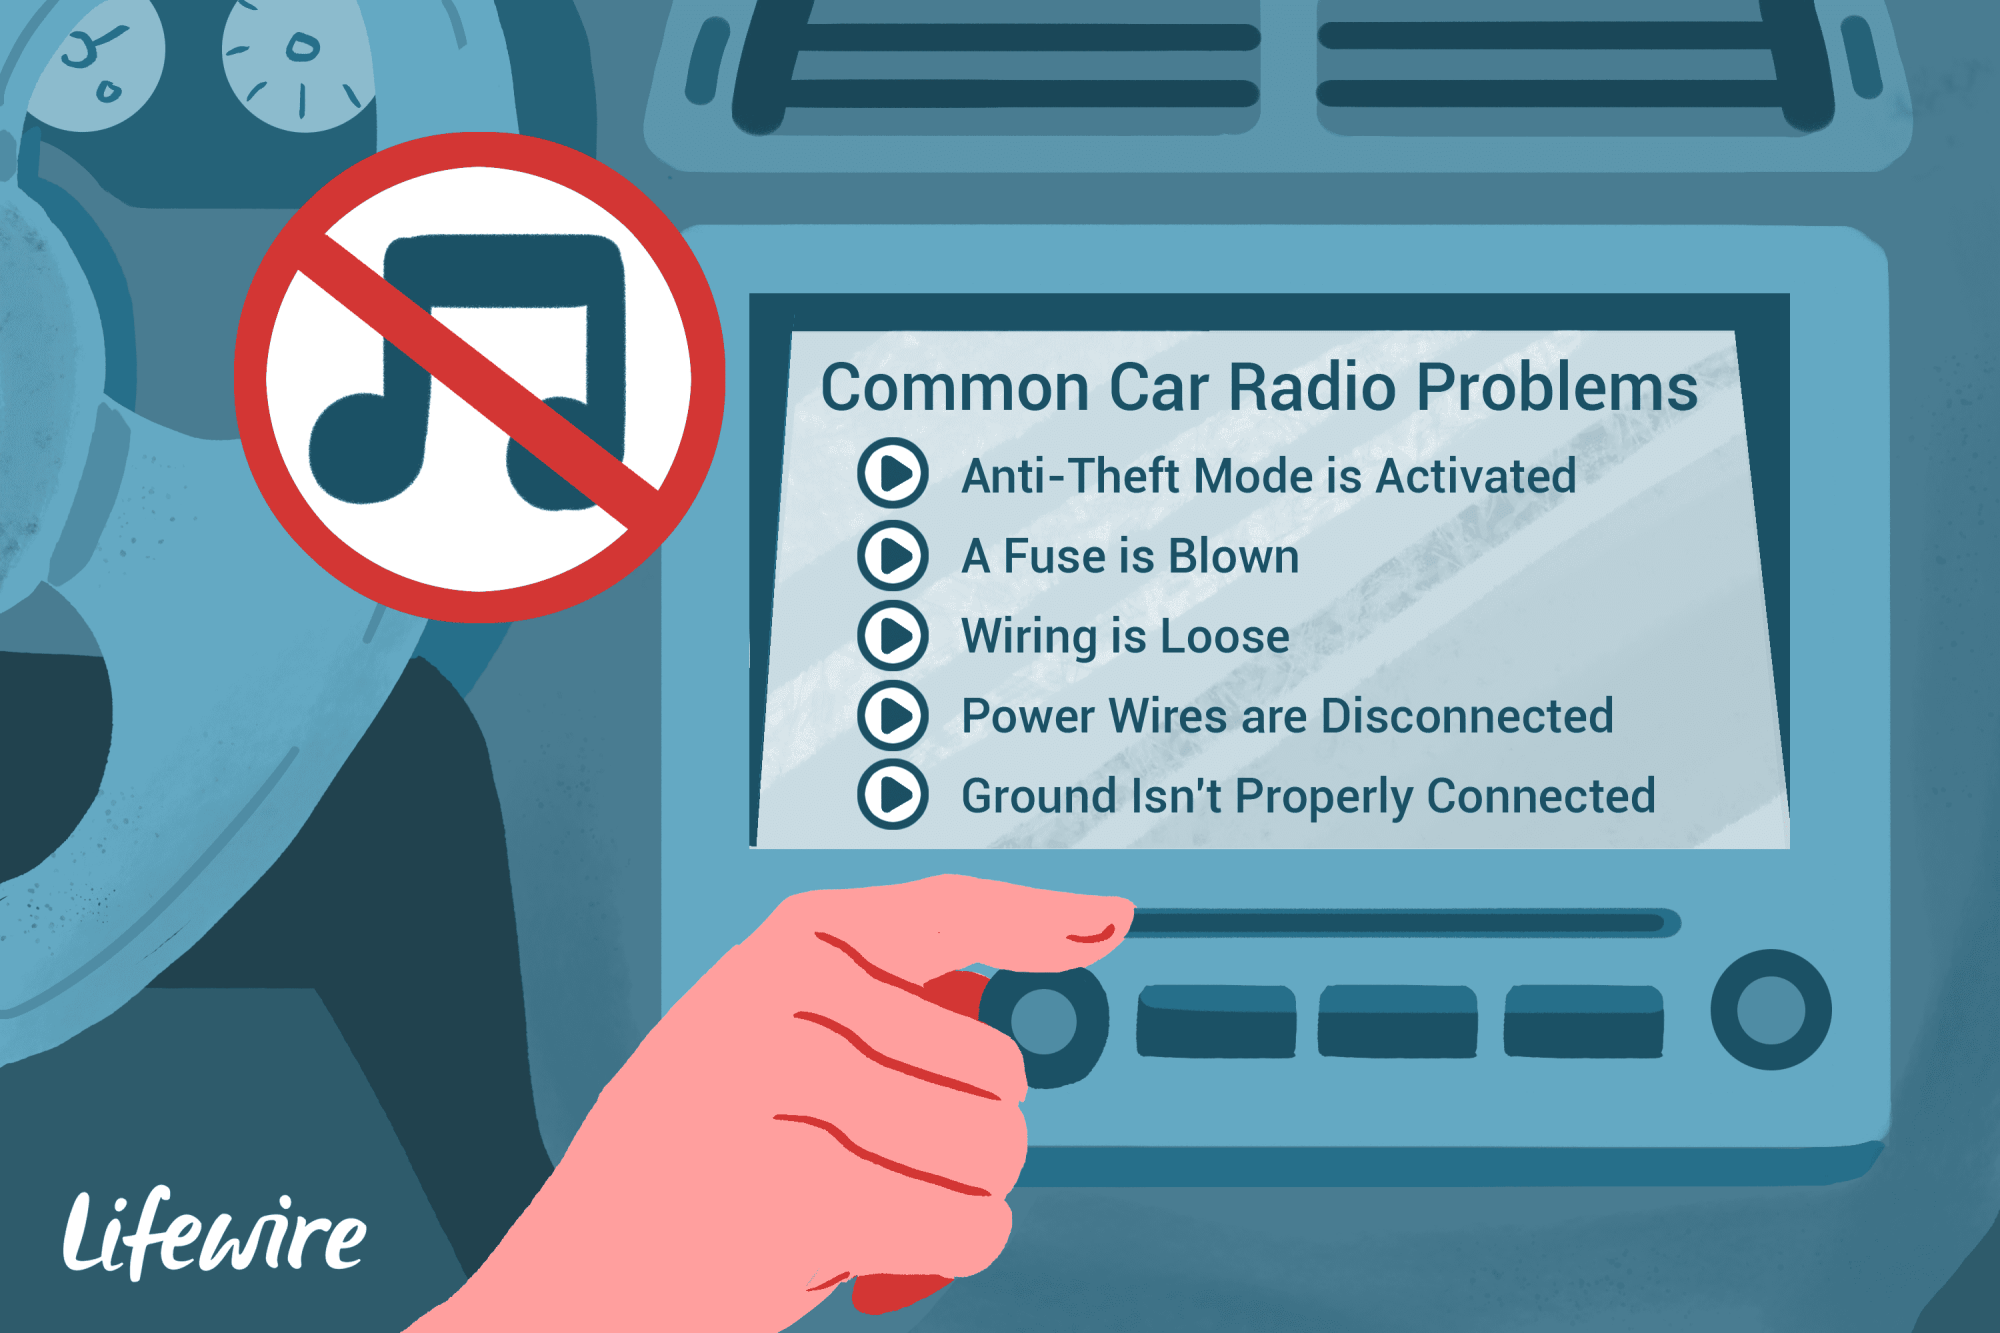 hight resolution of an illustration of the common problems people experience with car radios